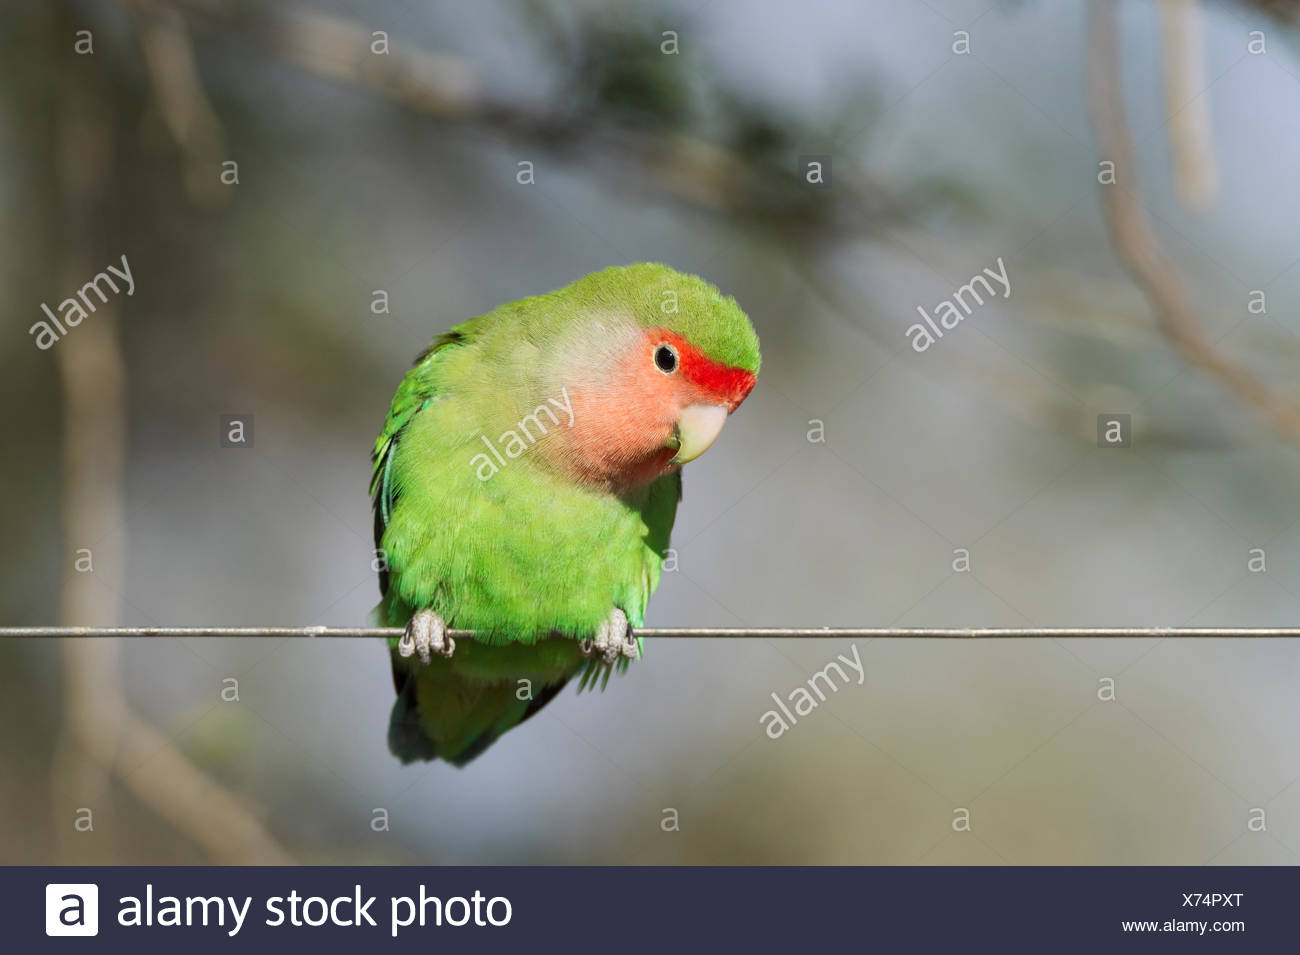 Parrot Wire Stock Photos & Parrot Wire Stock Images - Alamy